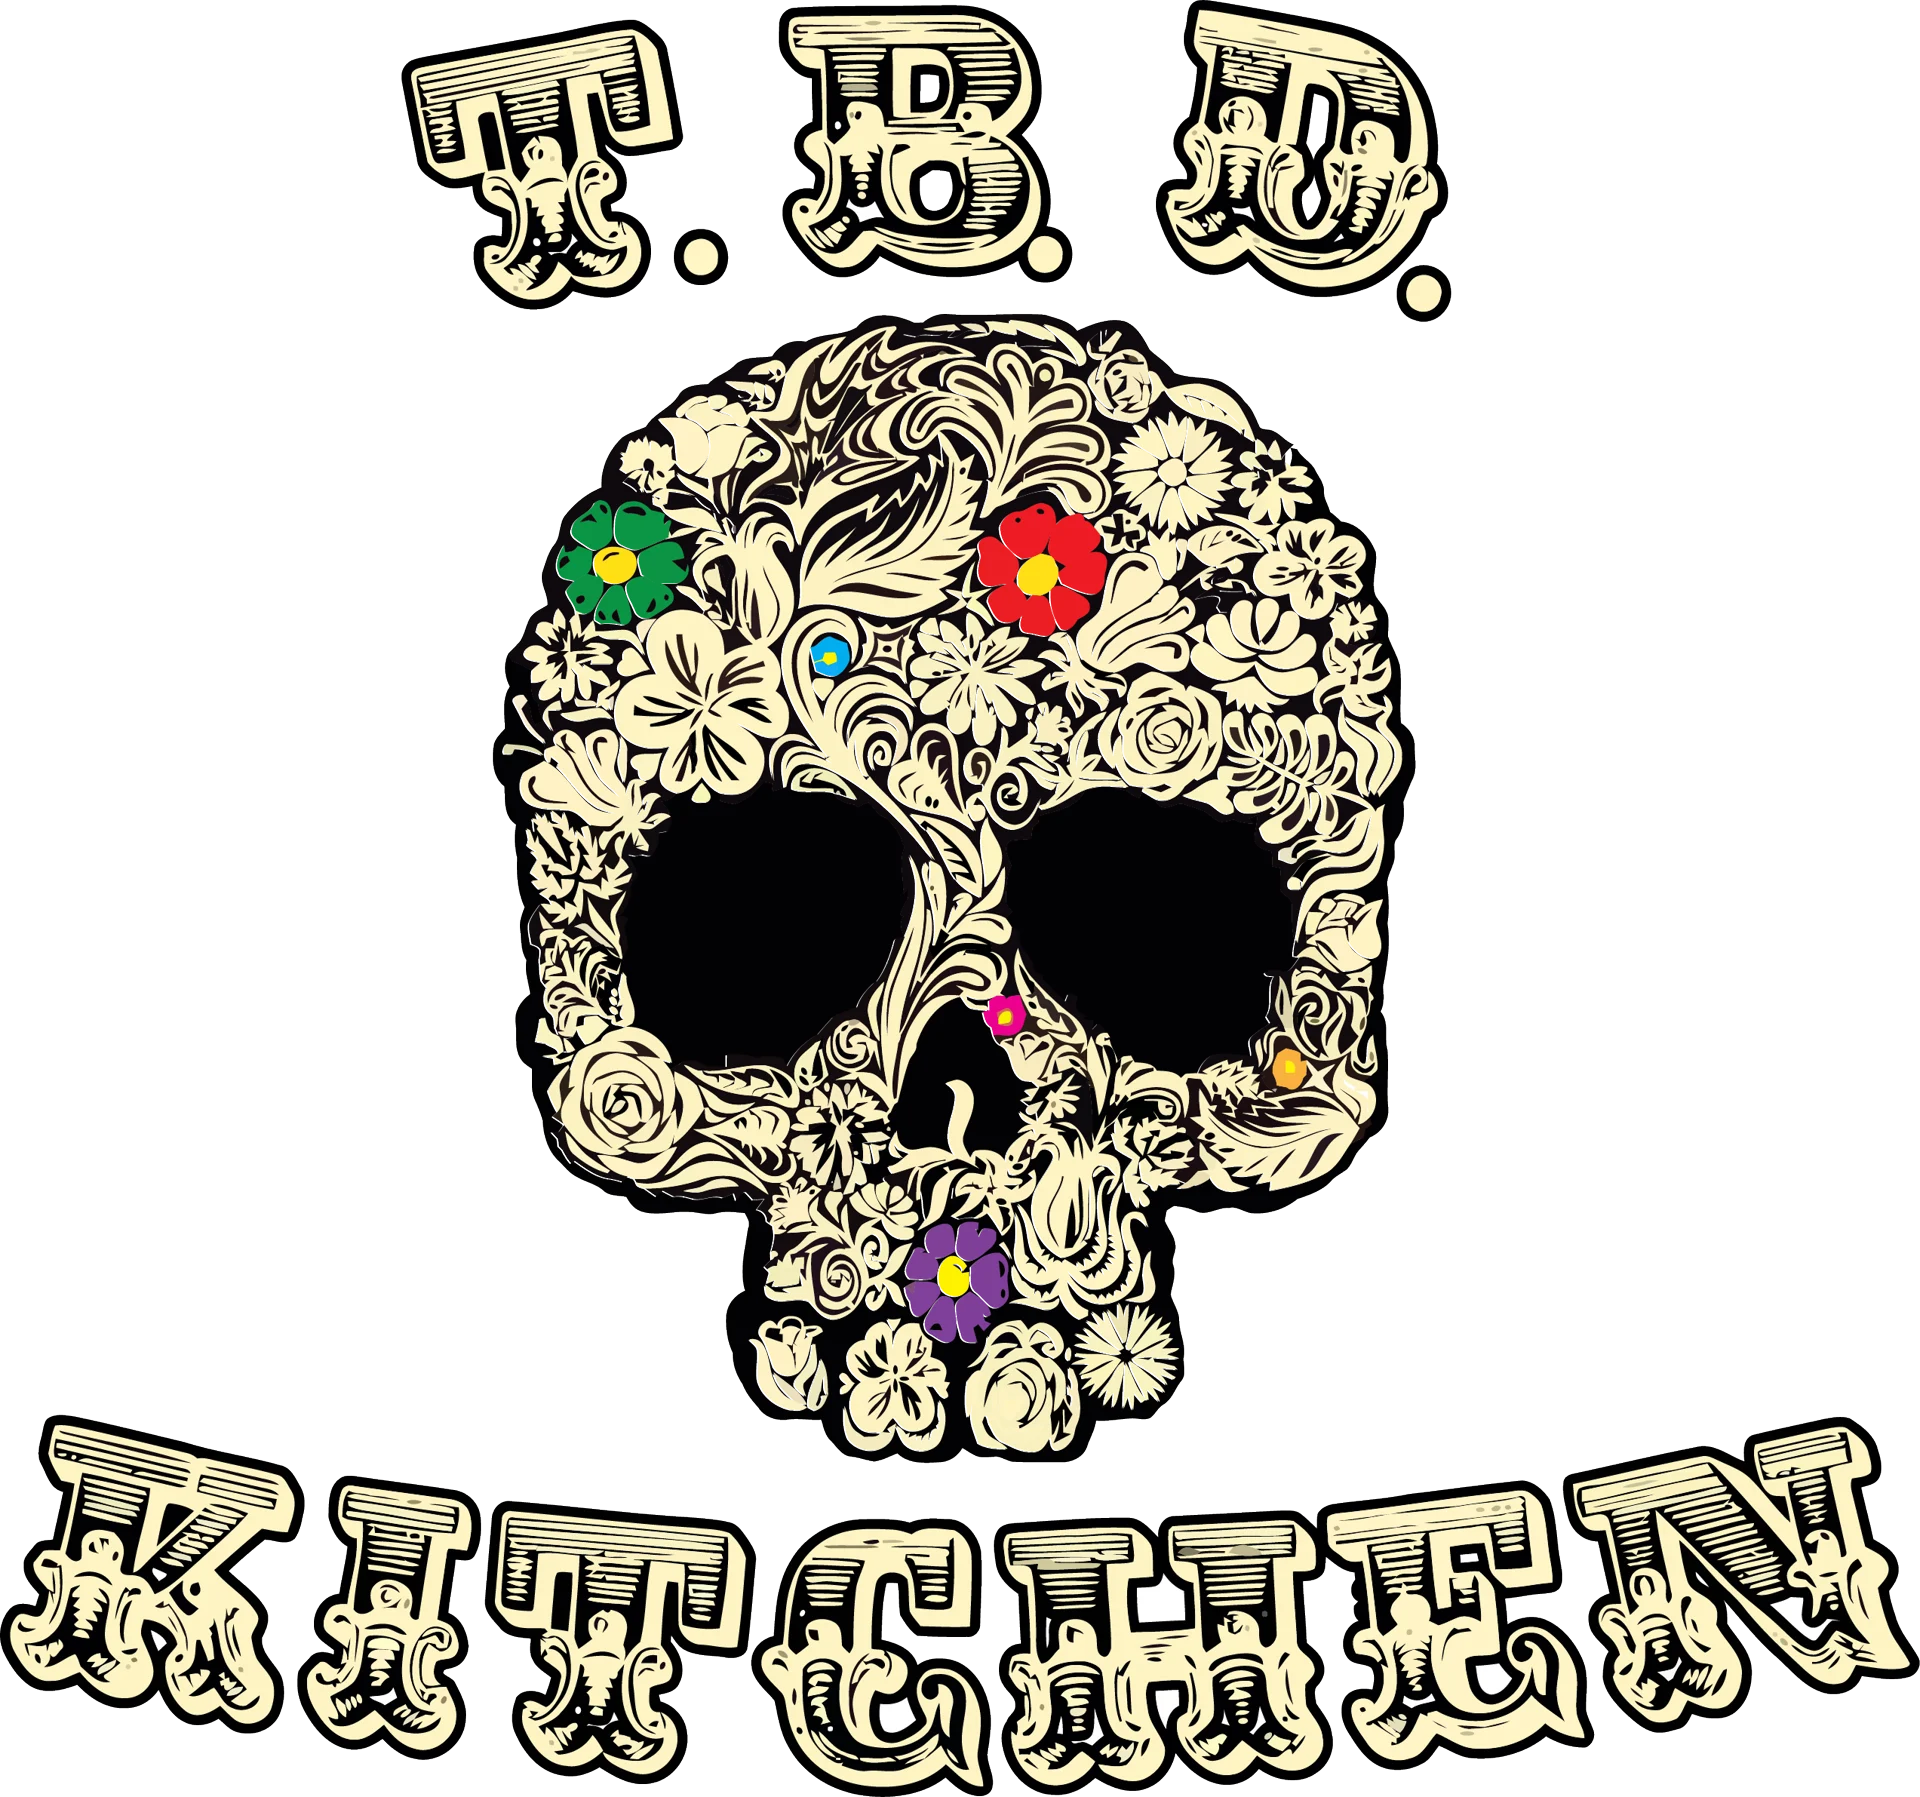 TBD Kitchen Logo